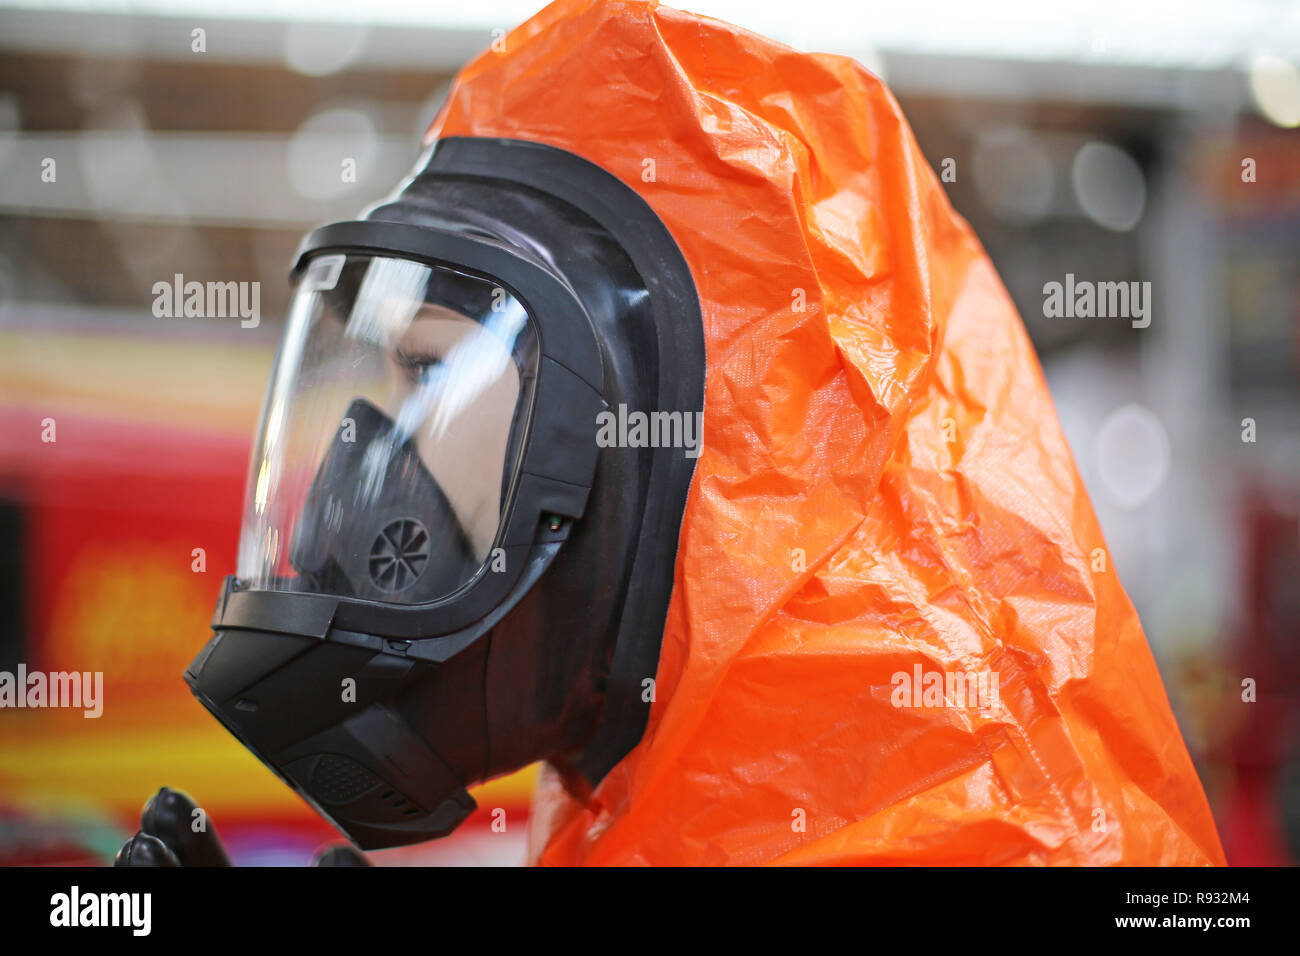 protective clothing with gas mask - Stock Image